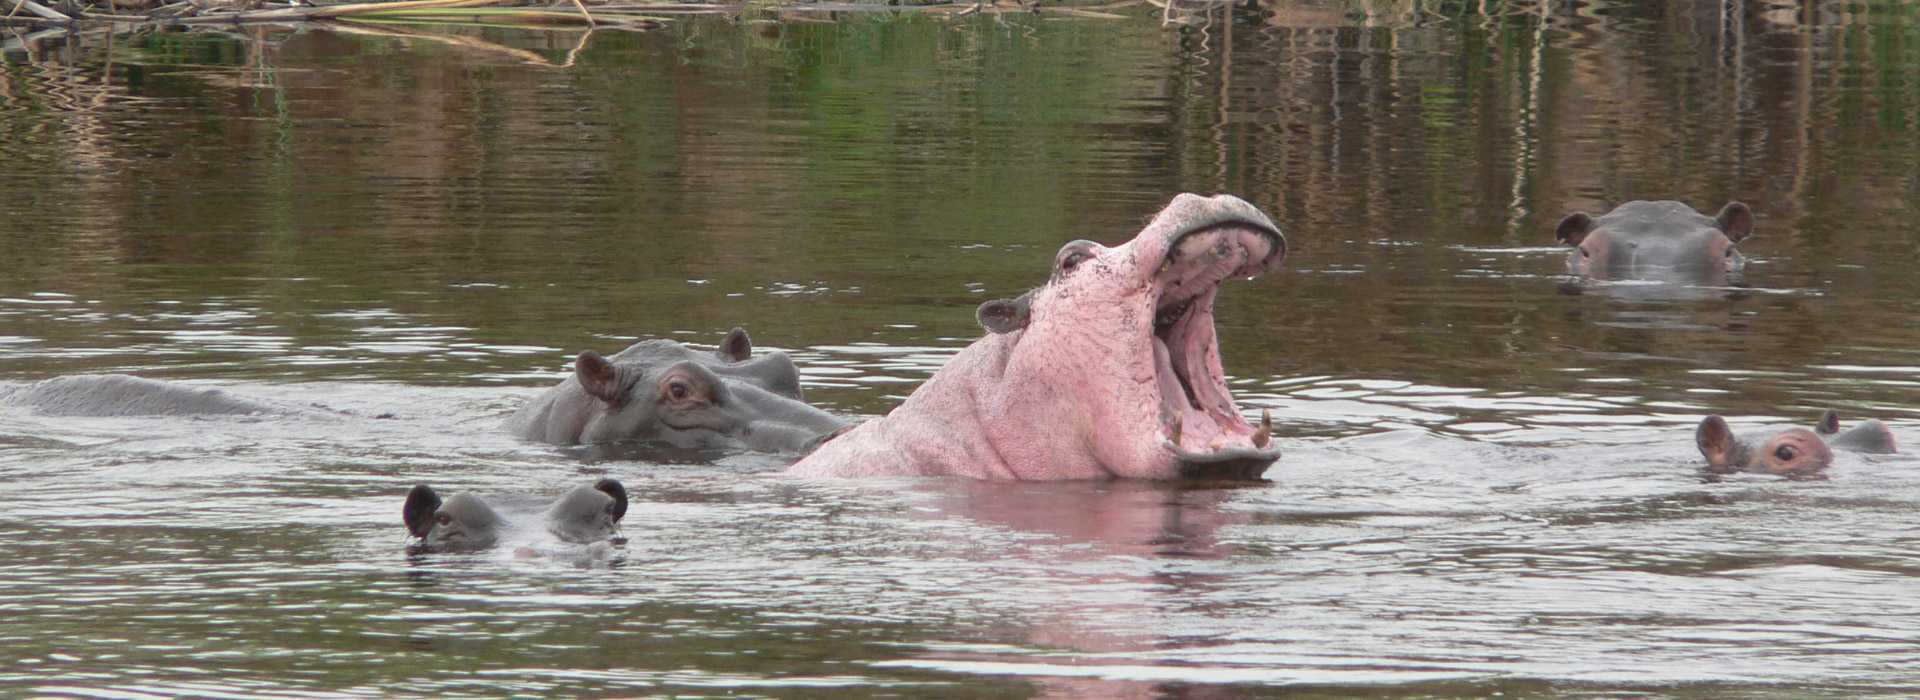 Hippos In The River, Namibia